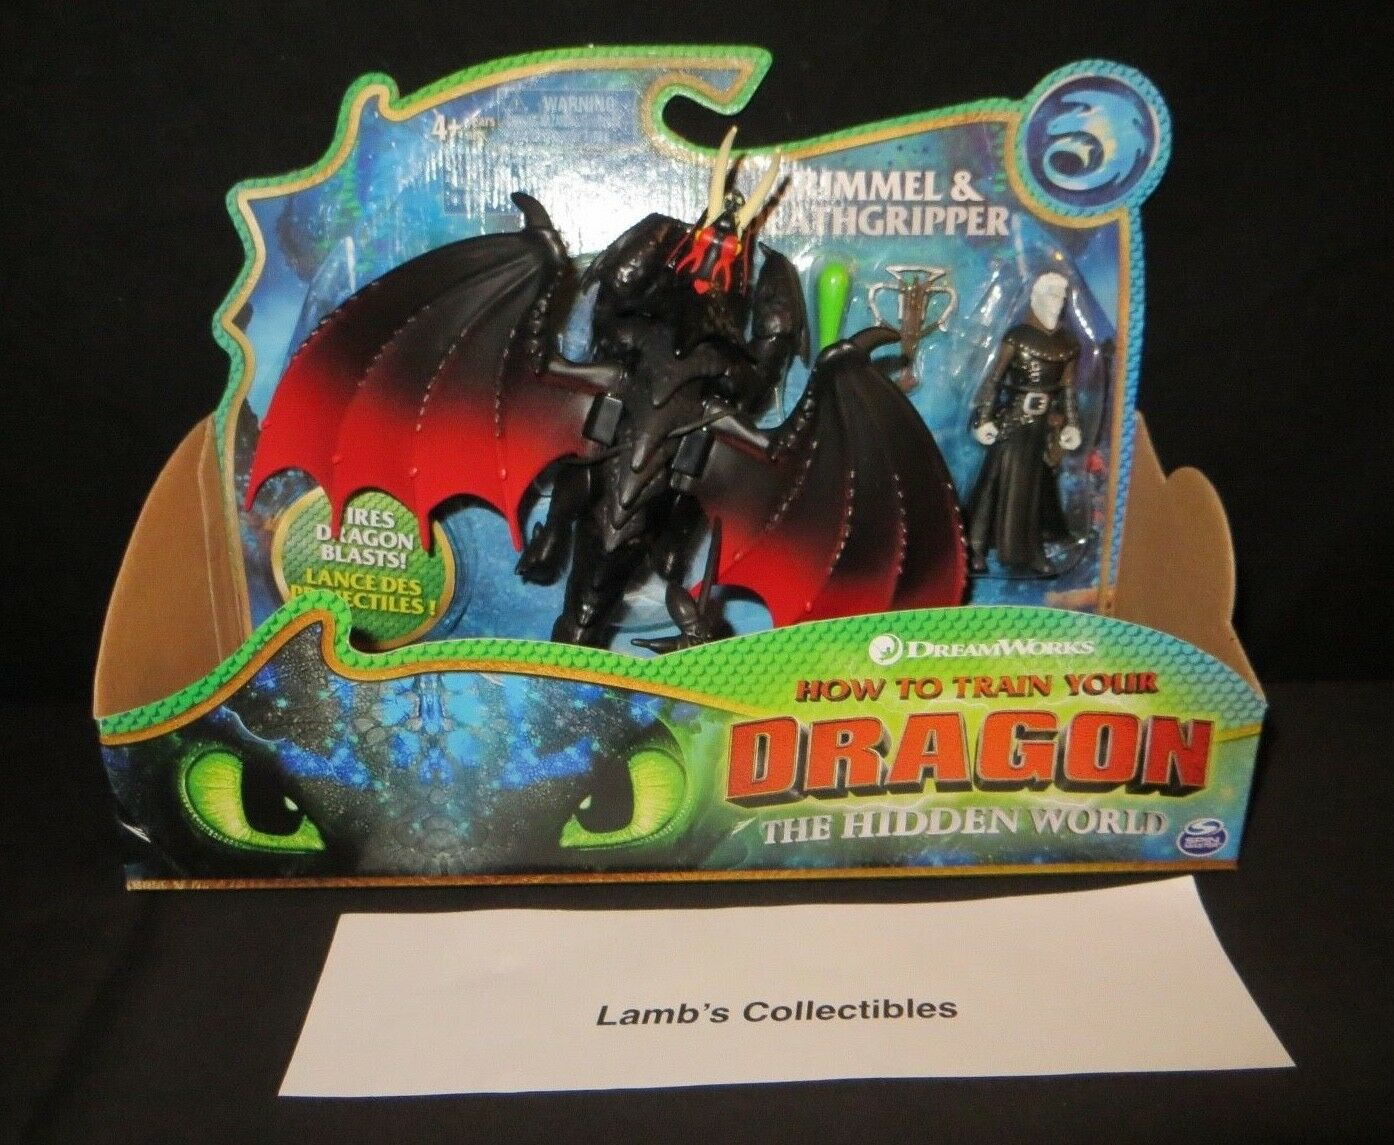 How to train your Dragon 3 The Hidden World Grimmel & Deathgrip dragon figures